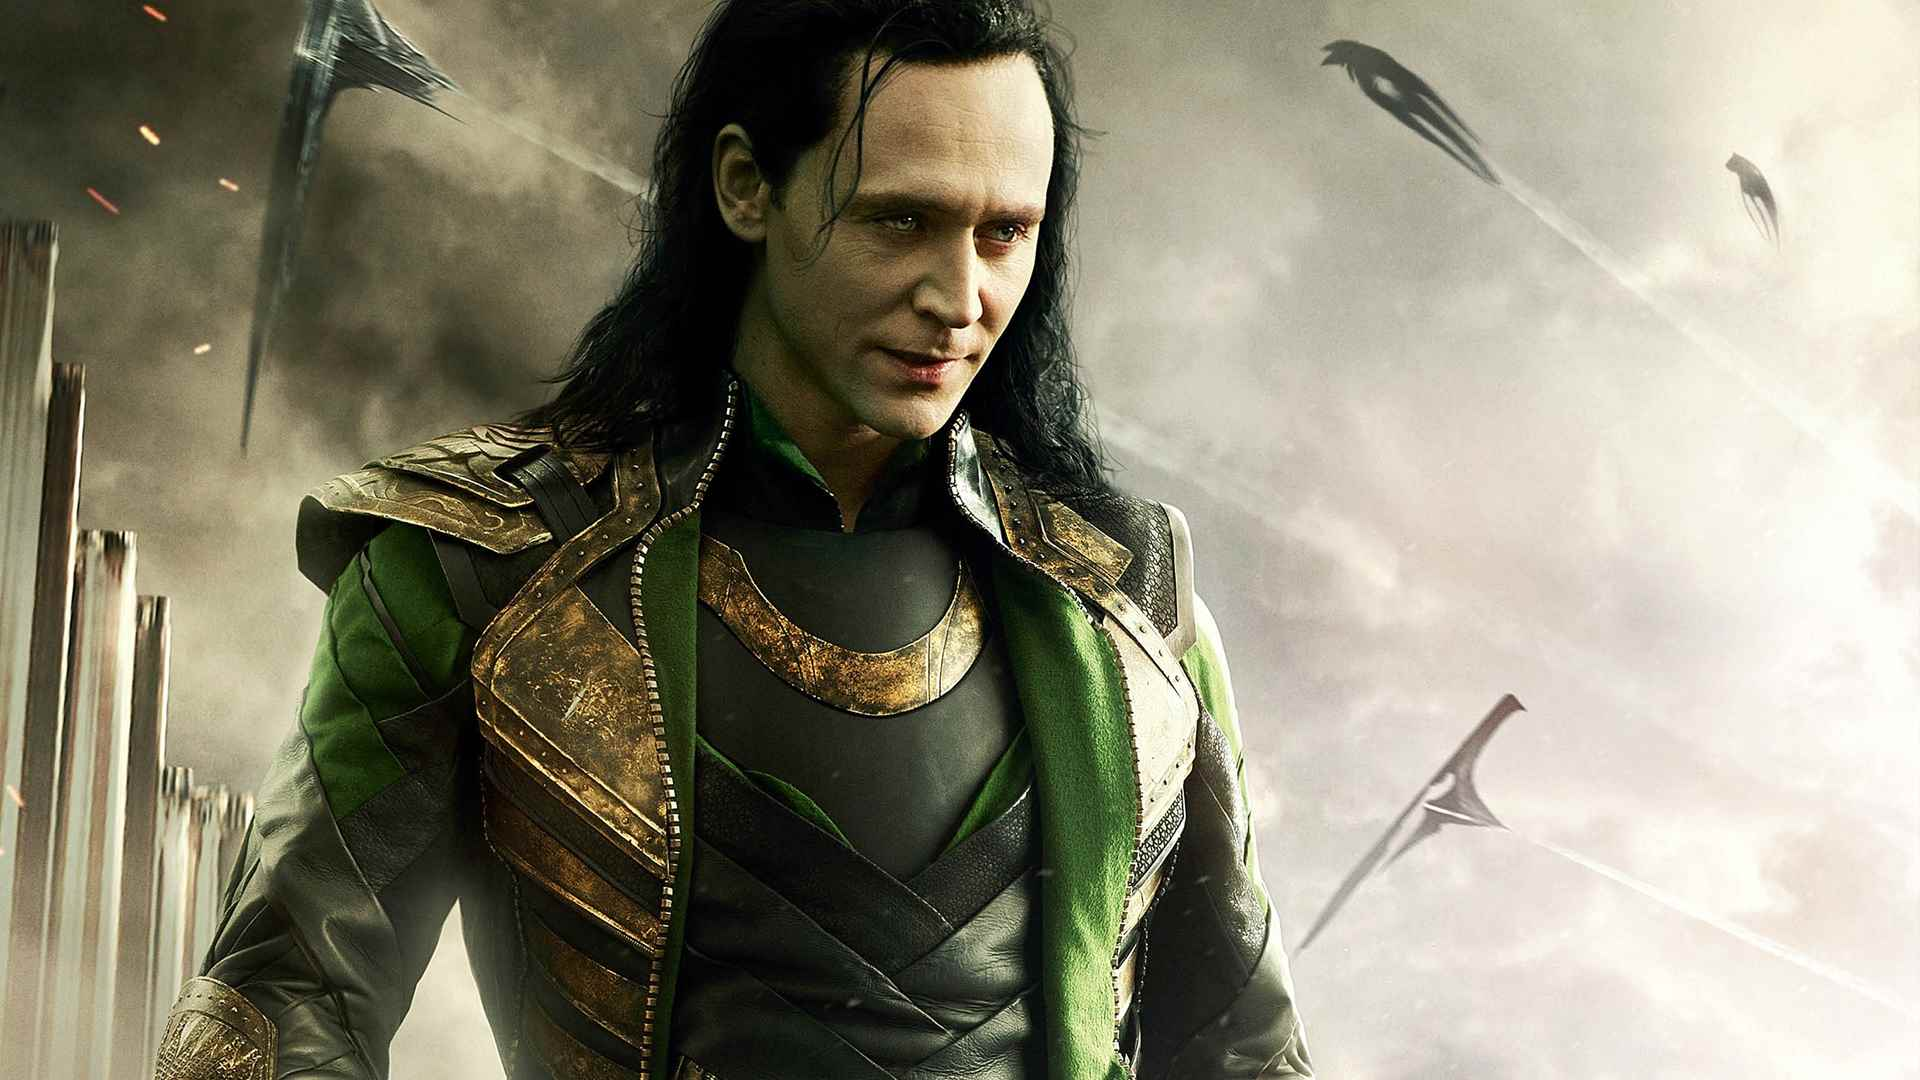 Hiddleston surprised by his long stint in 'Thor' franchise